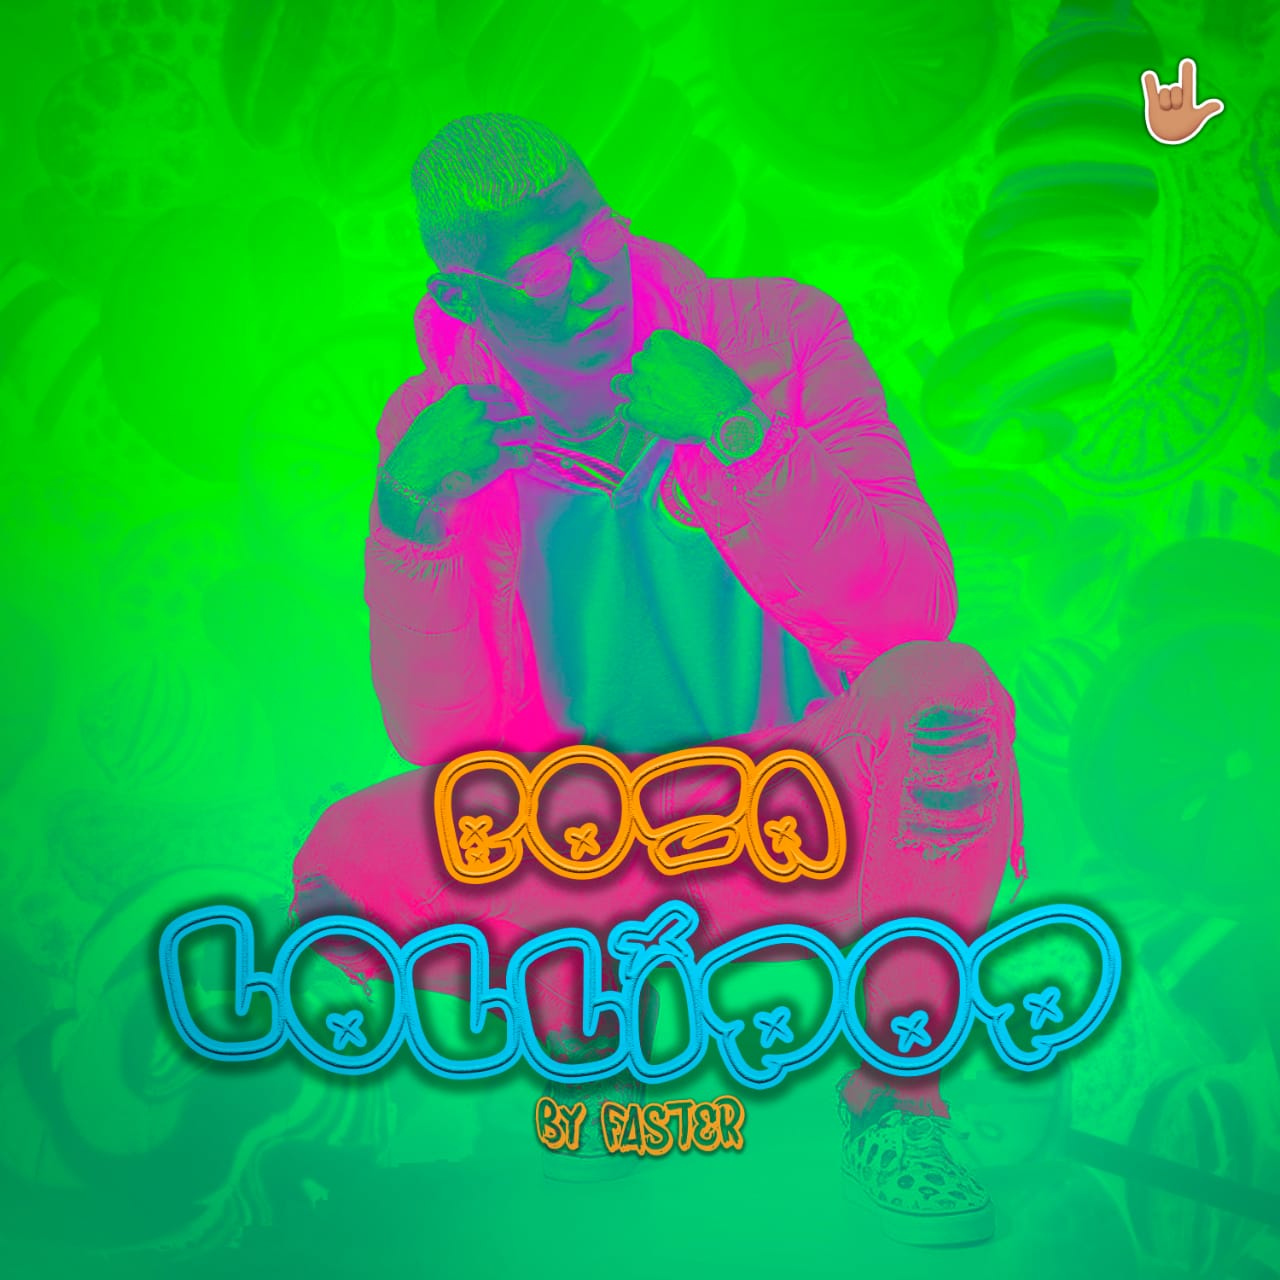 Boza - Lollipop